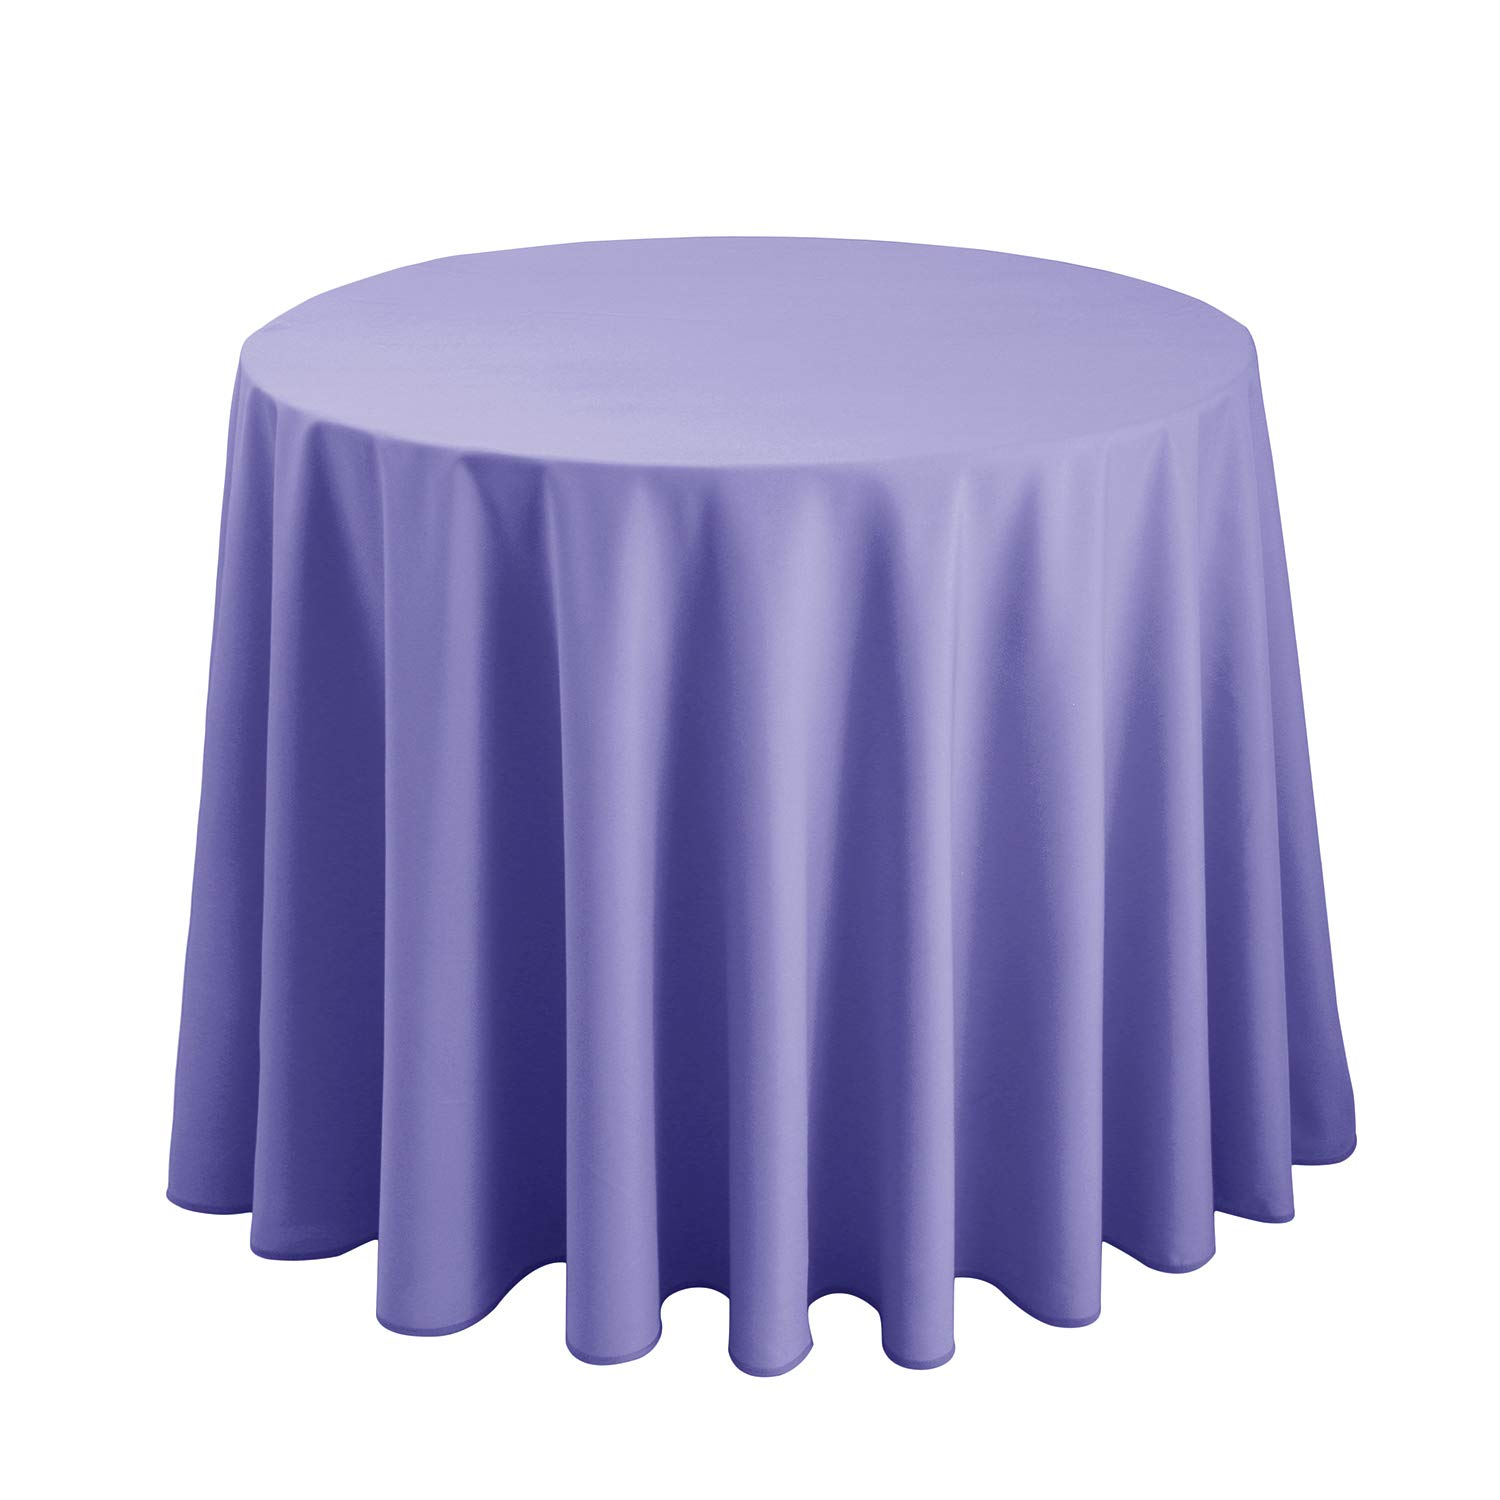 Hiasan Round Tablecloth 108 Inch - Waterproof Stain Resistant Spillproof Polyester Fabric Table Cloth for Dining Room Kitchen Party, Lavender